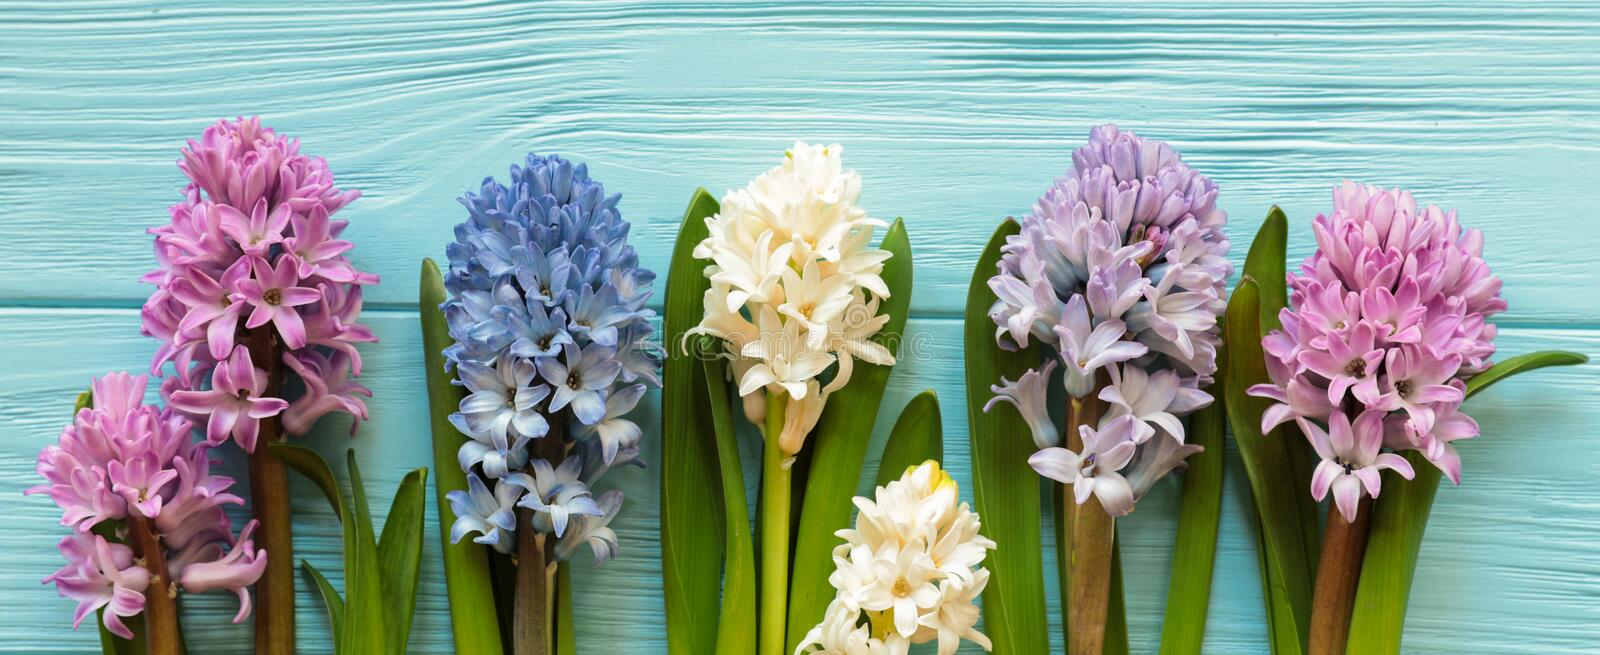 Row of beautiful flowers of hyacinth in delicate shades of pink, blue, white, violet colors on the blue wooden background royalty free stock photos